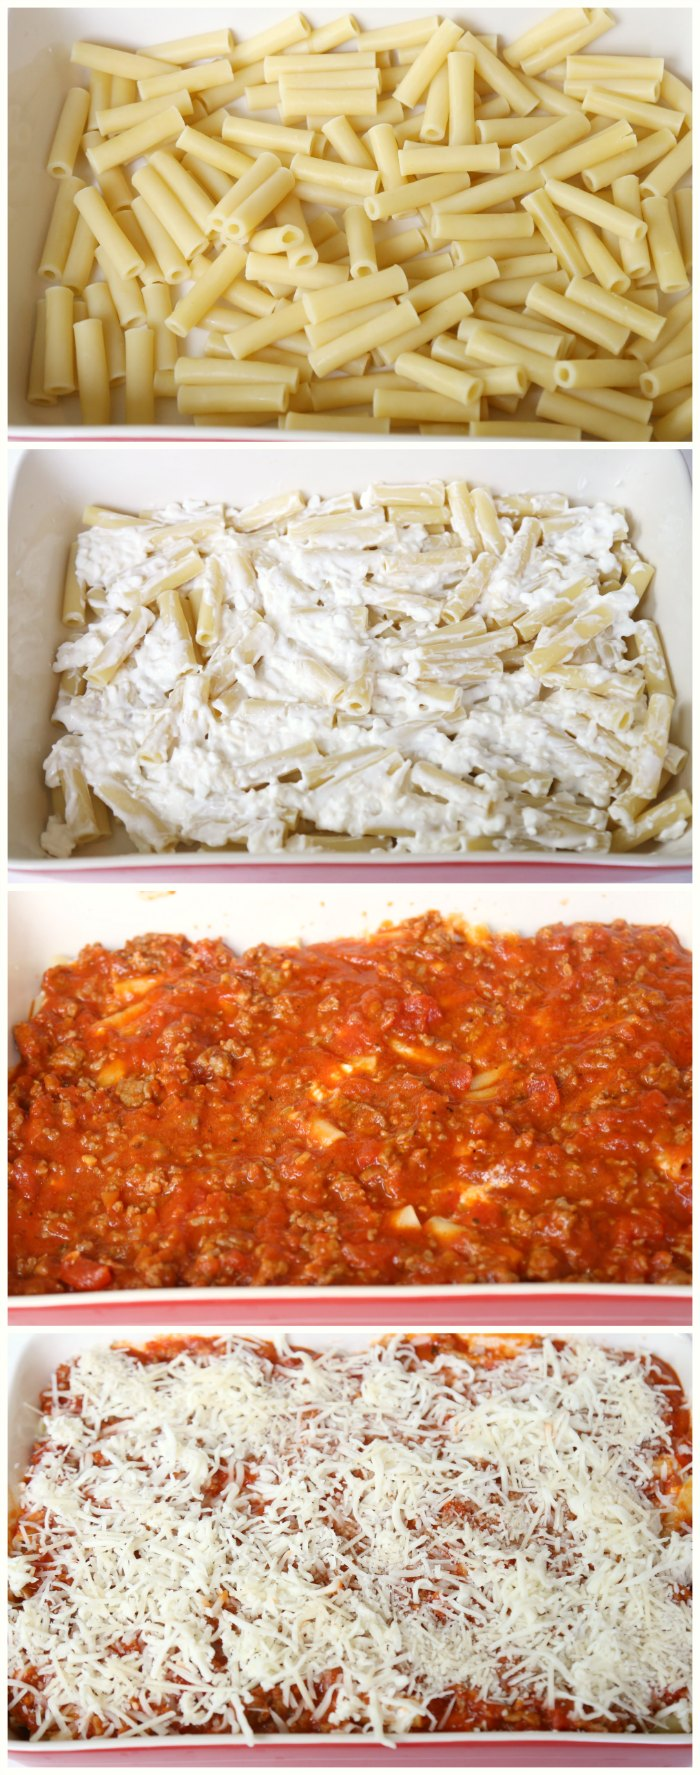 Making baked ziti